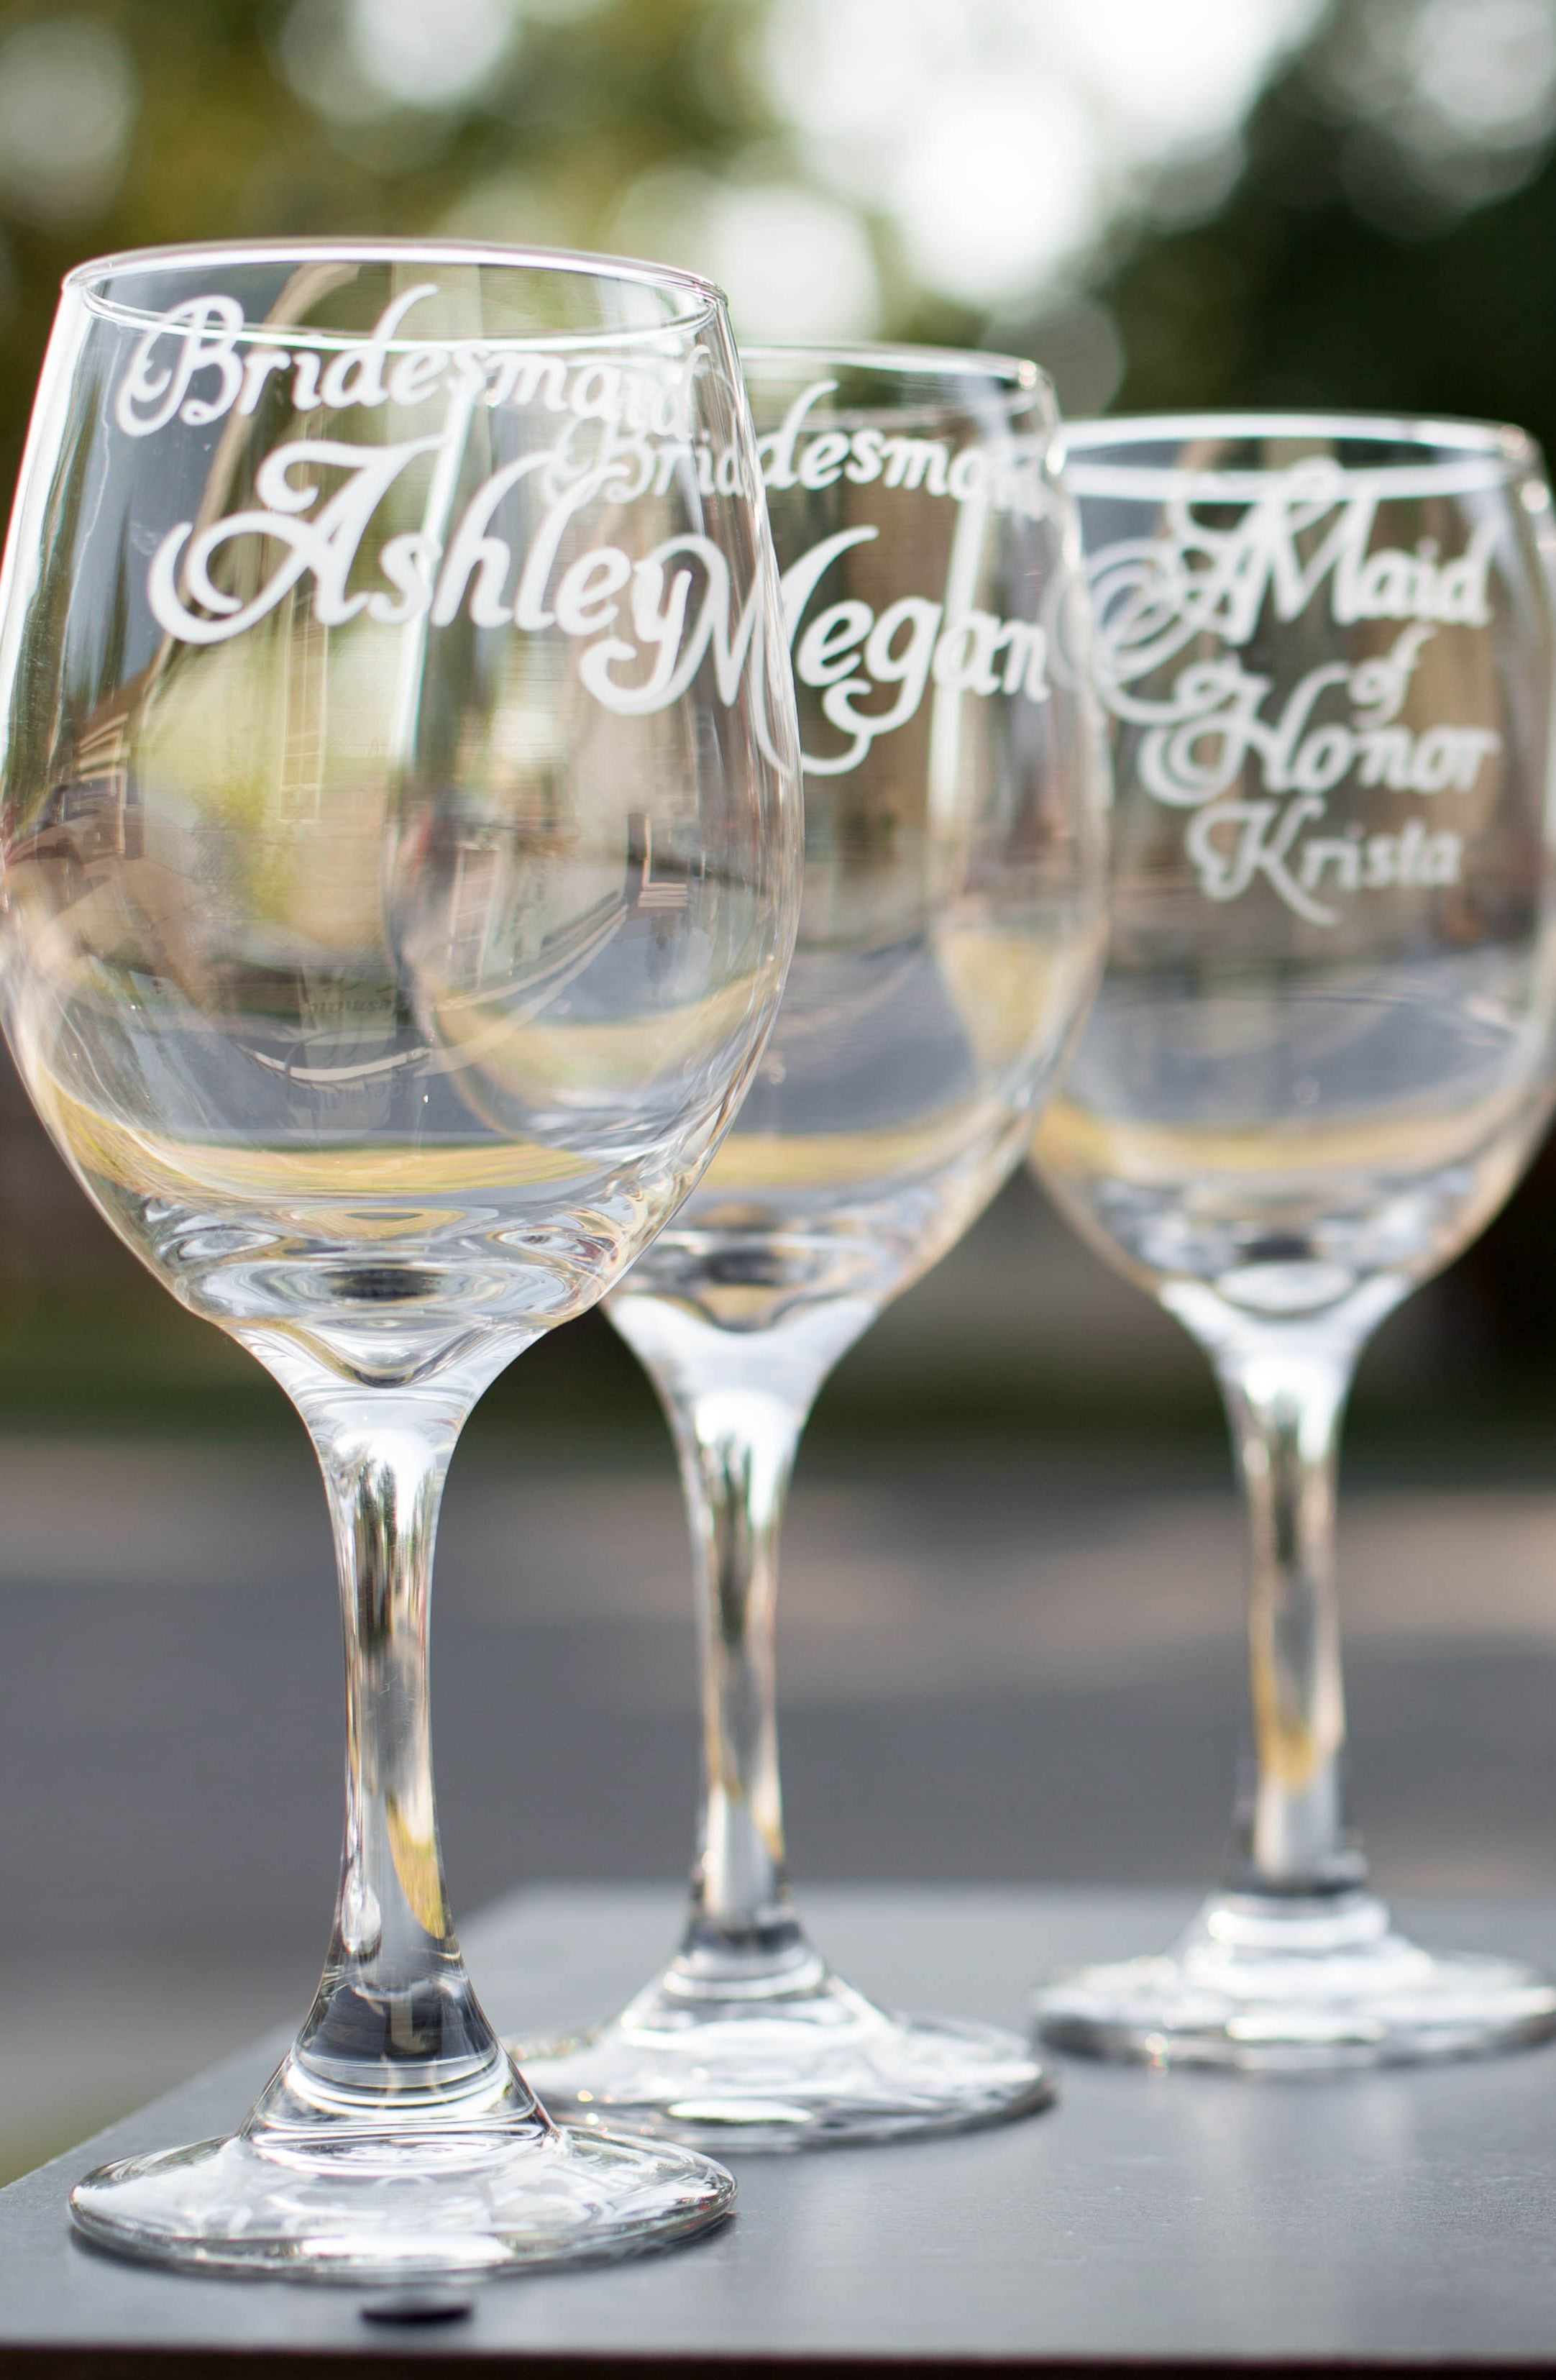 Set Of 3 Bridesmaid Wine Glasses Style With Wedding Date On Foot Of Glass Hand Etched Personalized Everre Online Store Powered By Storenvy